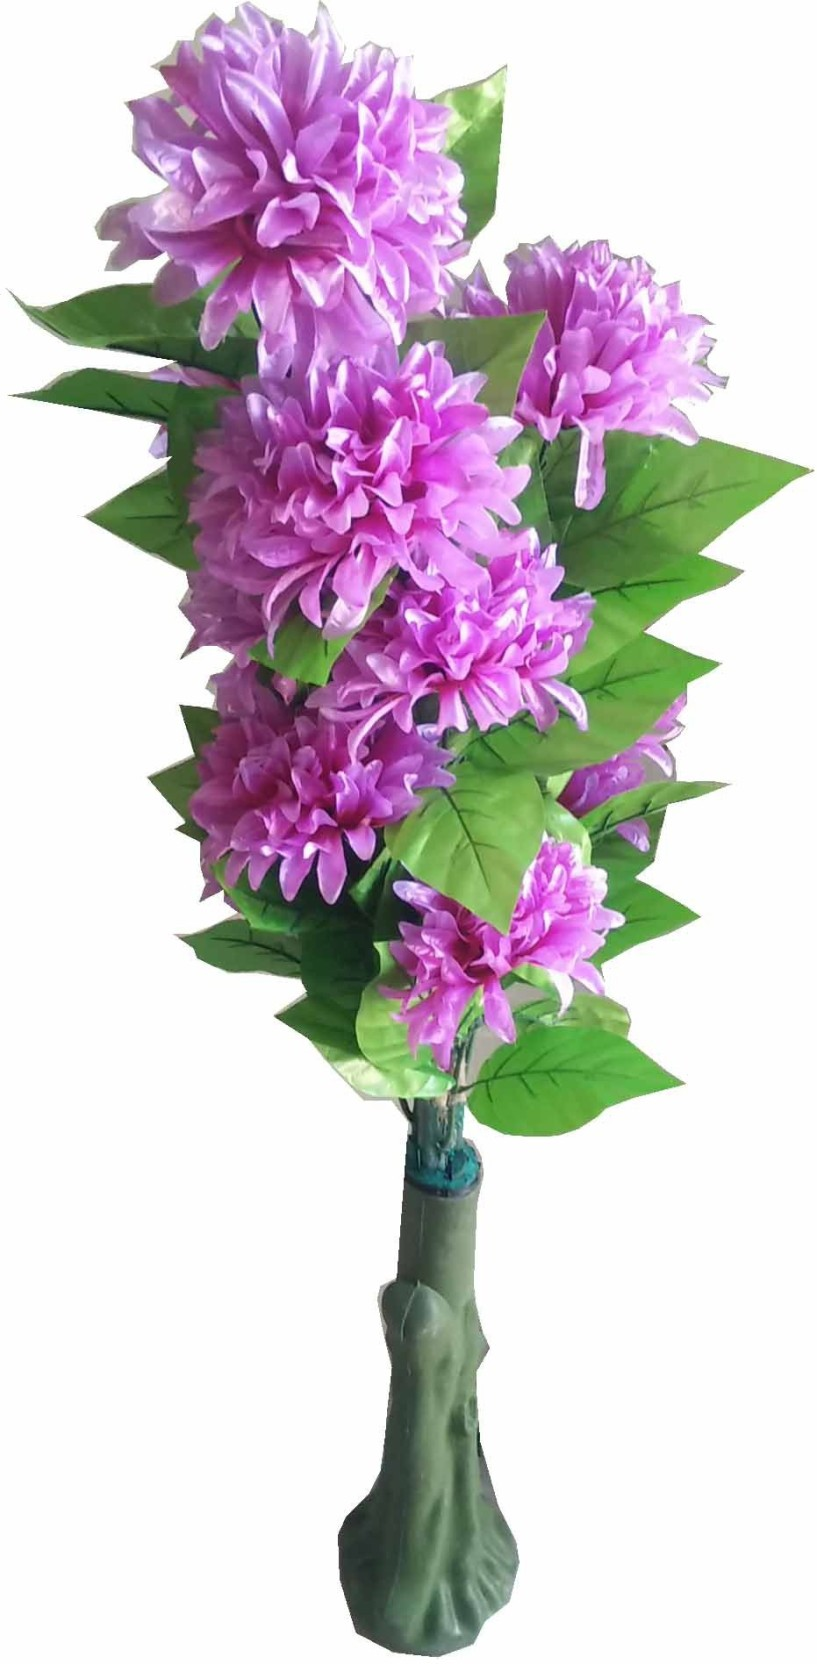 Kaykon Big Artificial Tree With 12 Big Purple Flowers For Home Decor